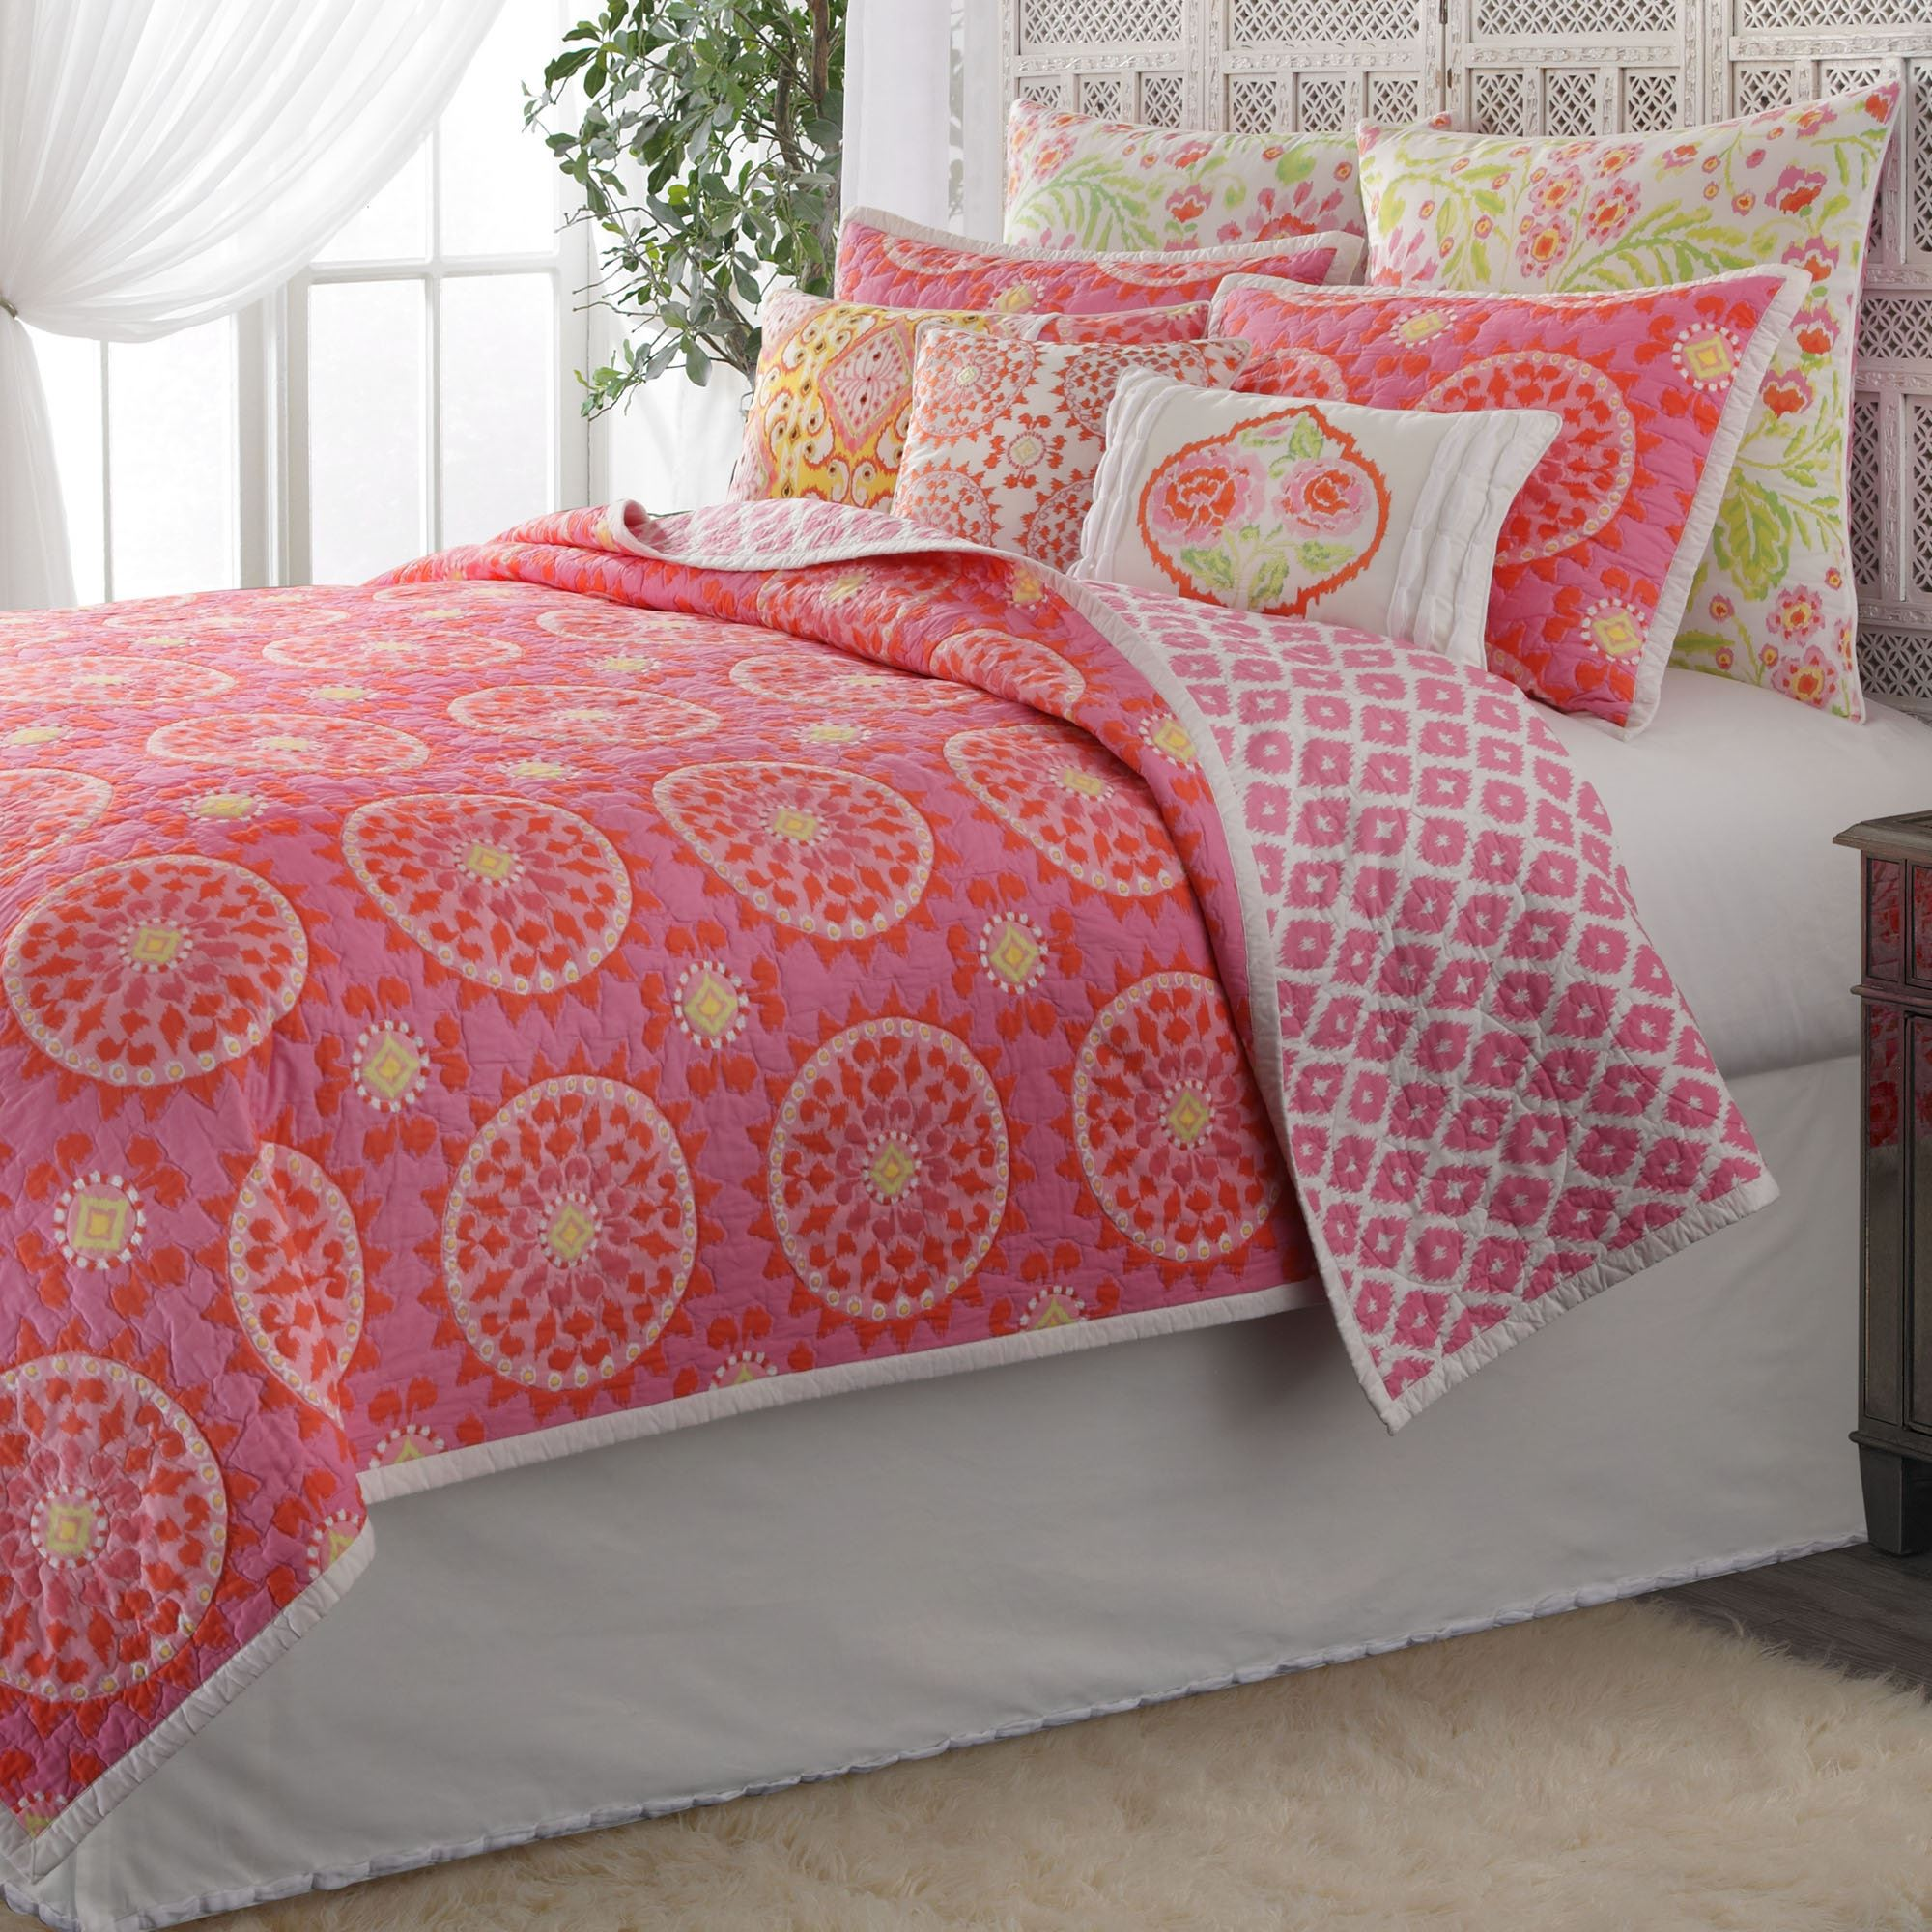 Dream Nest Cotton Quilt Rose Pink. Click To Expand